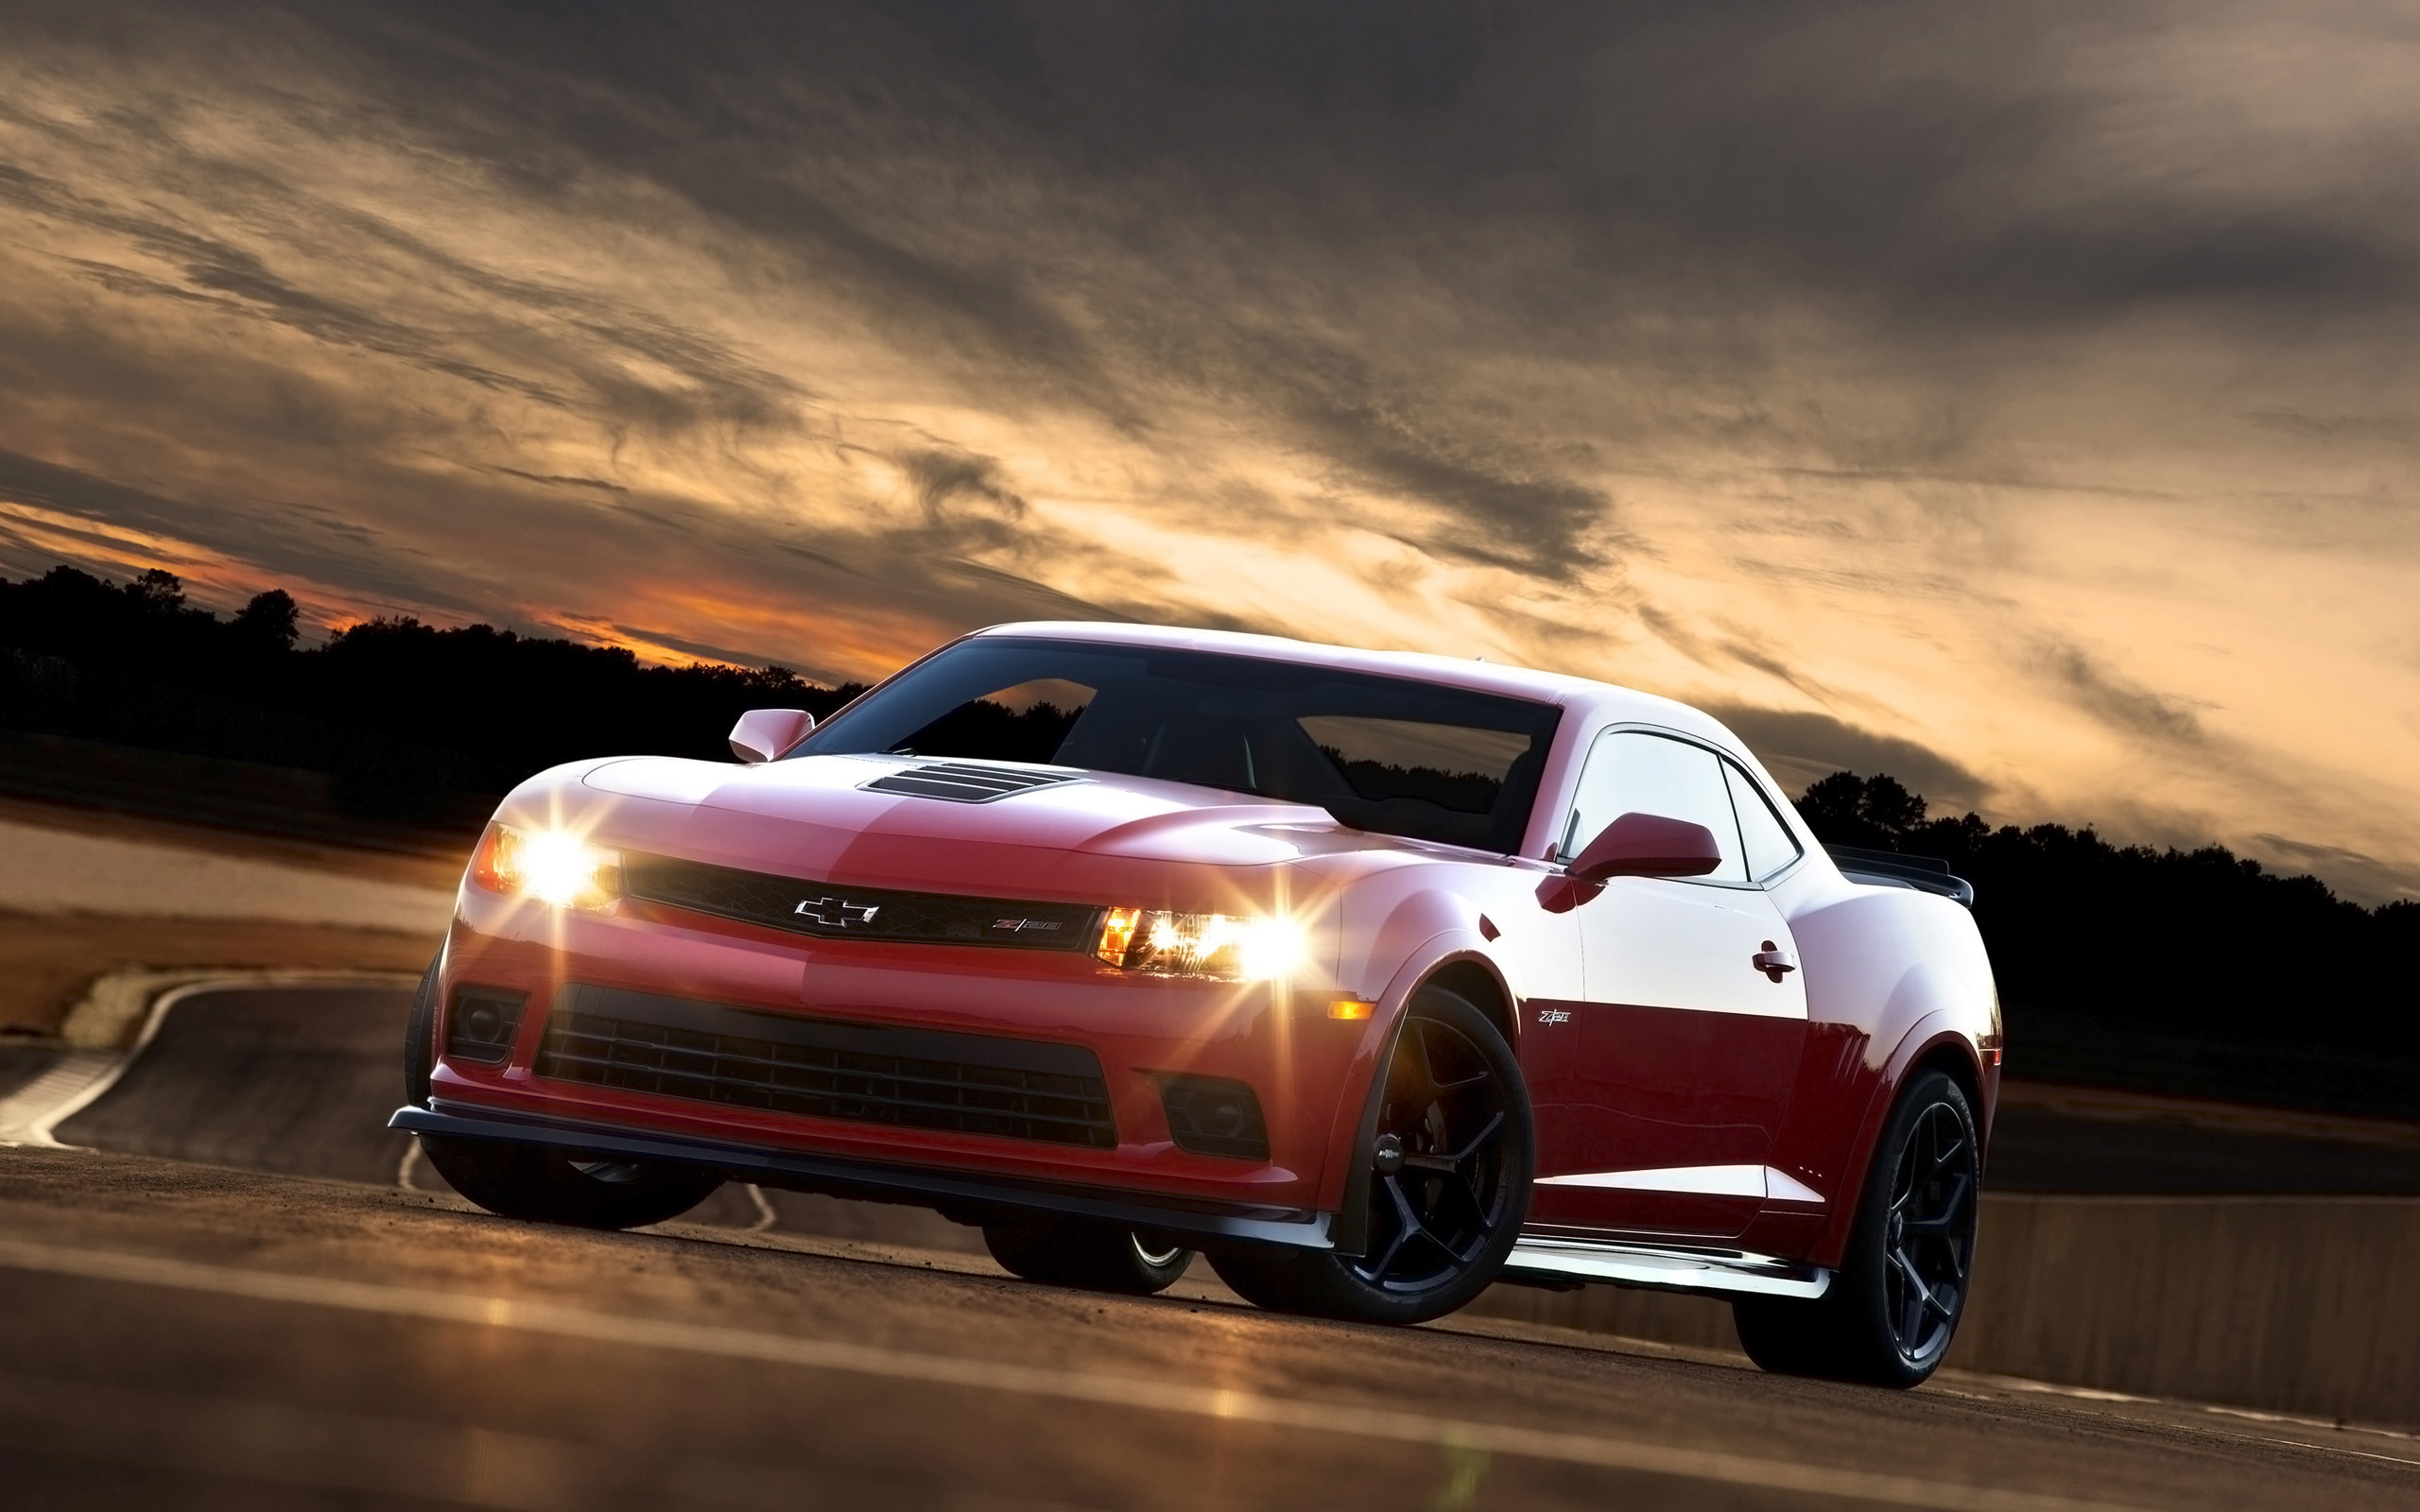 2560x1600 Wallpaper Chevrolet Camaro Ssx x Supercar Luxury Car